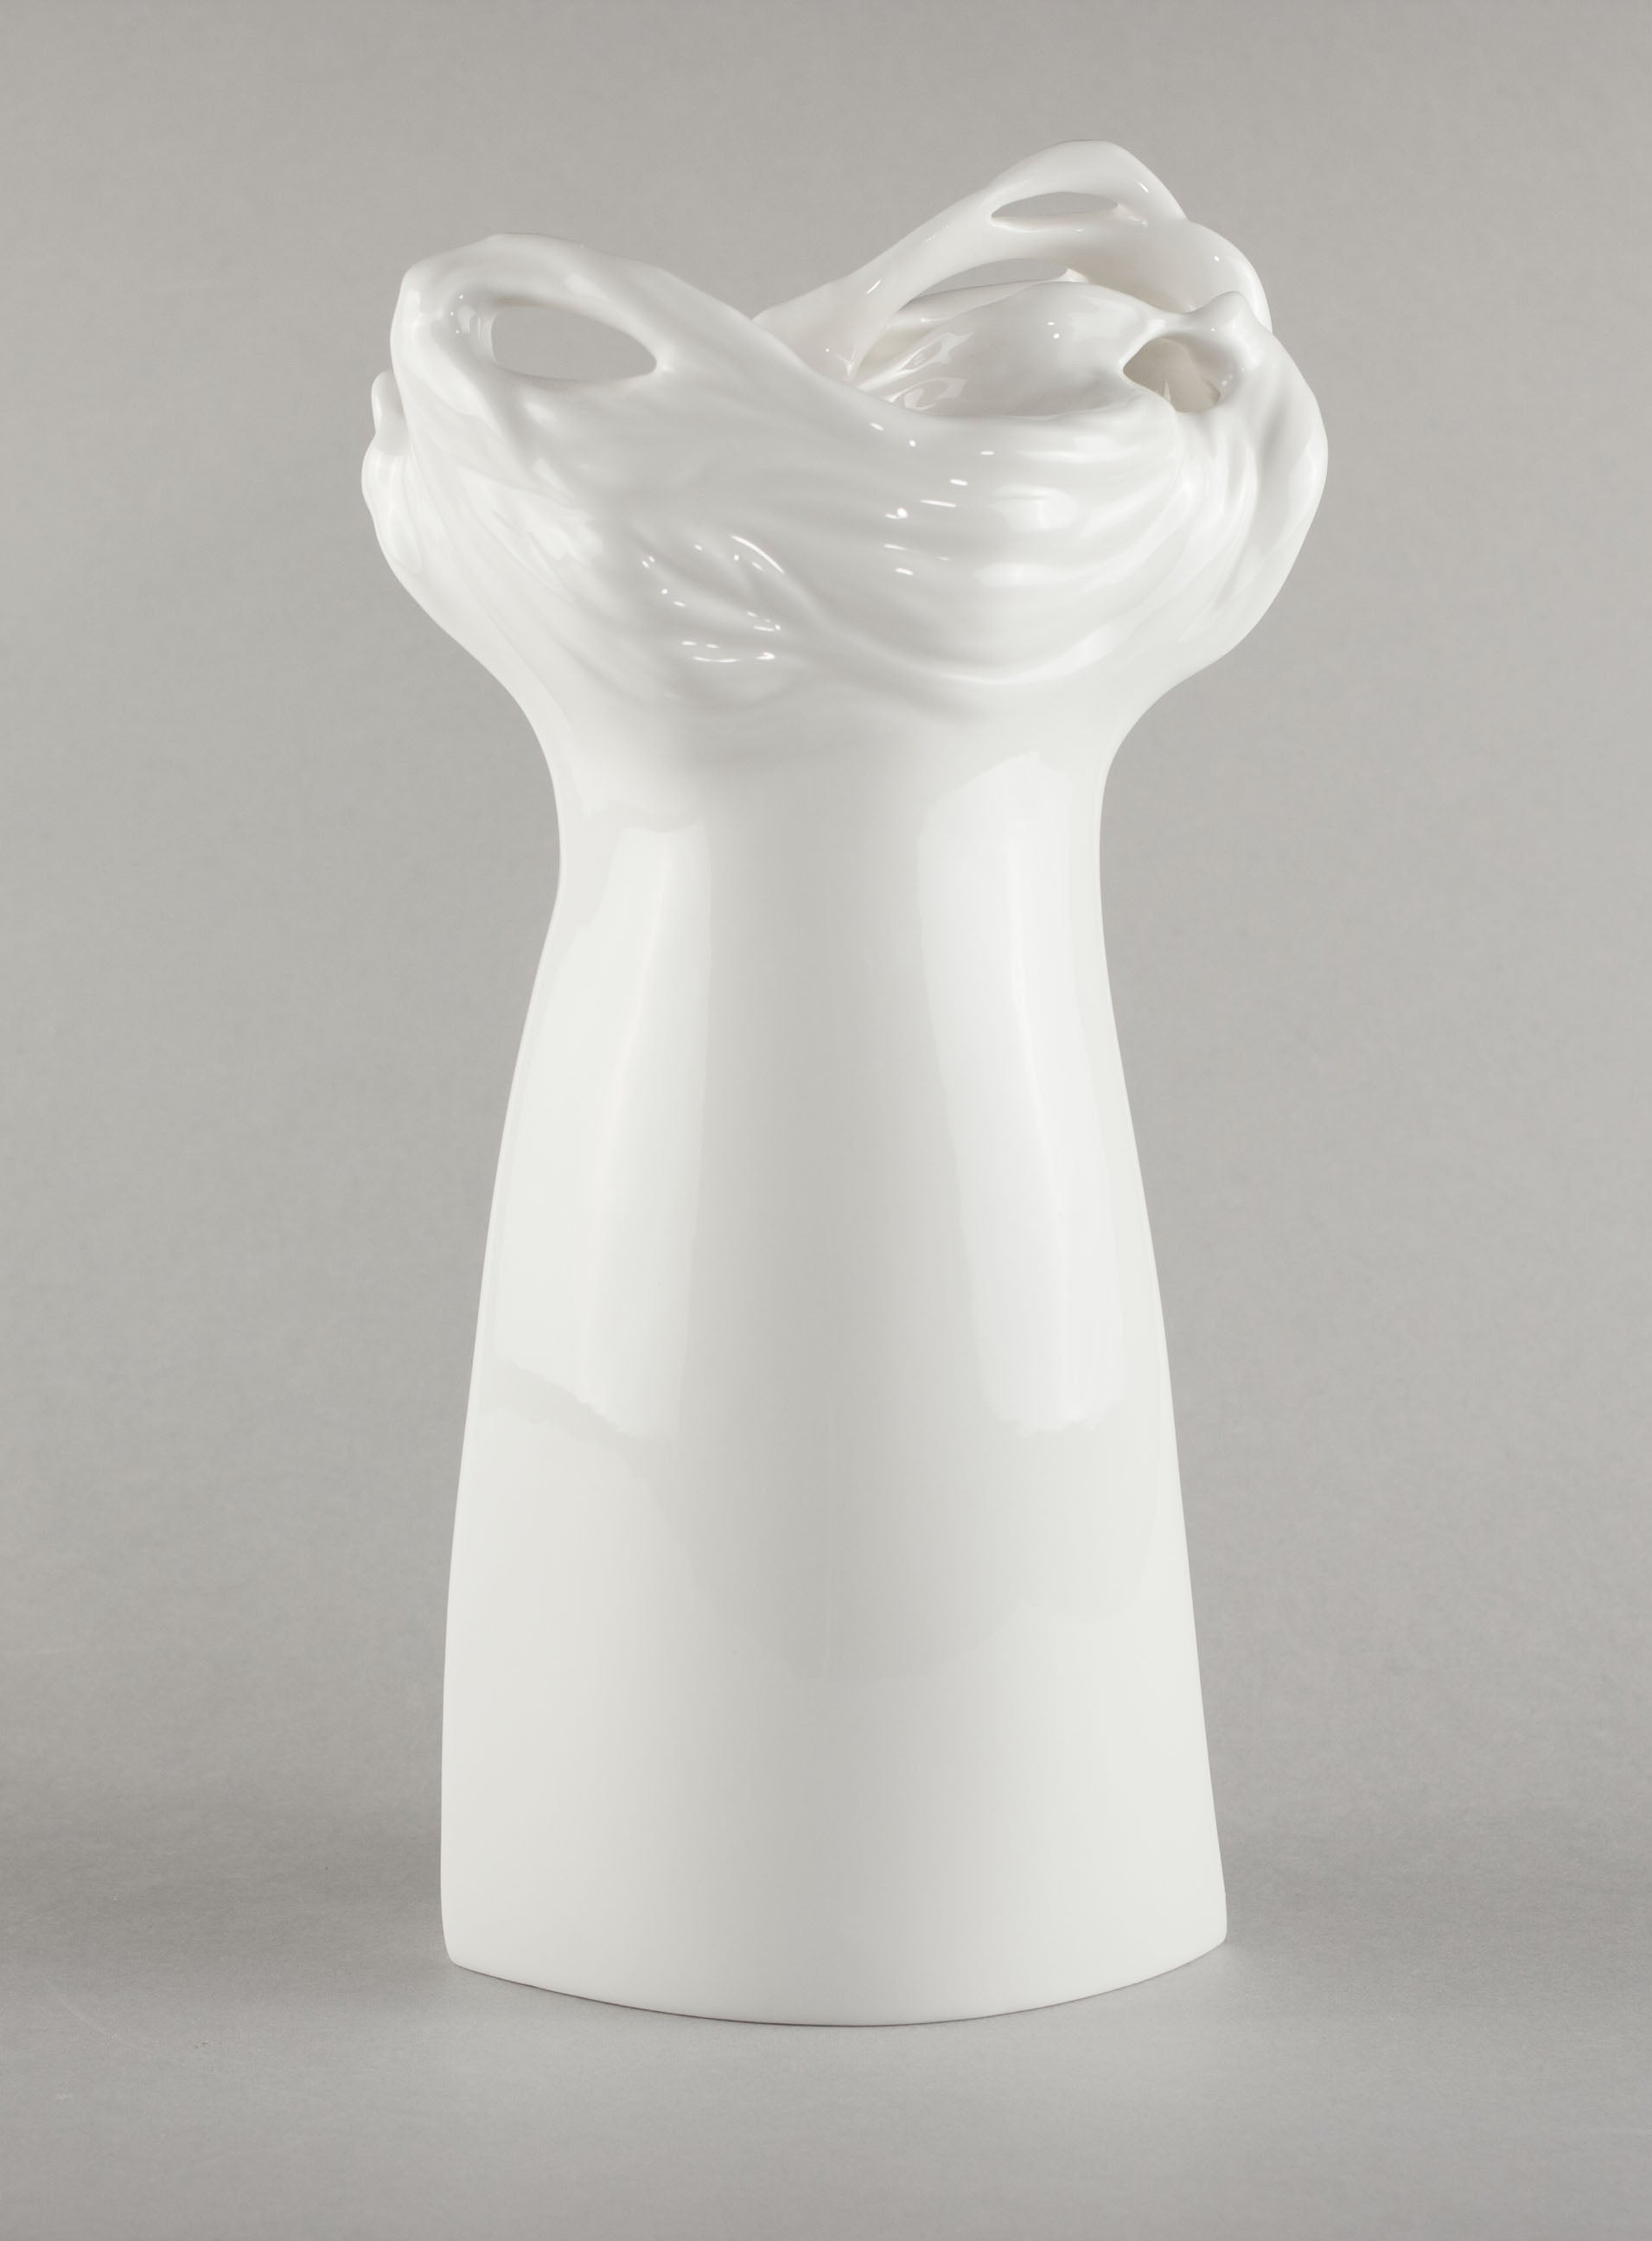 Porcelain Vase Waves